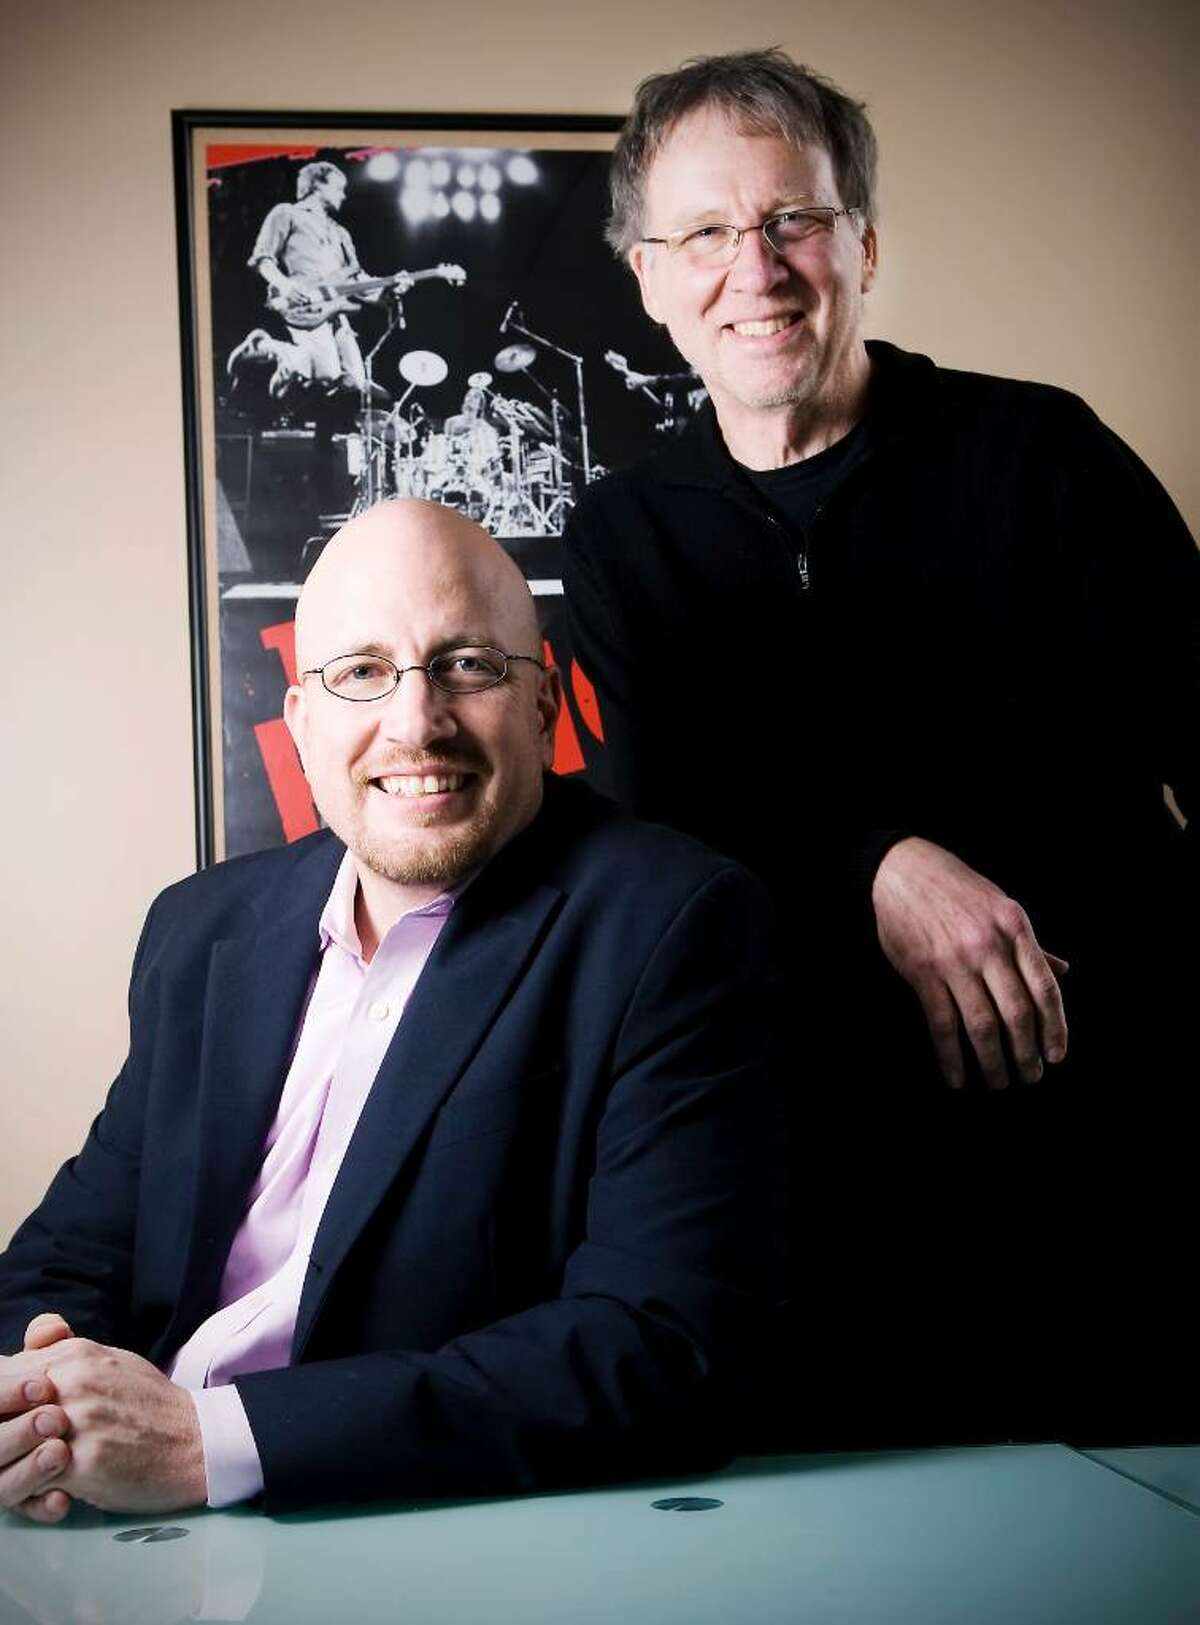 """Bob Kernen and Tom Sharrard, Co-founders of GrokMusic, a free music website that specializes in helping you """"Find the Music You're Missing"""" in their Norwalk, Conn. office on Tuesday, Jan. 26, 2010."""